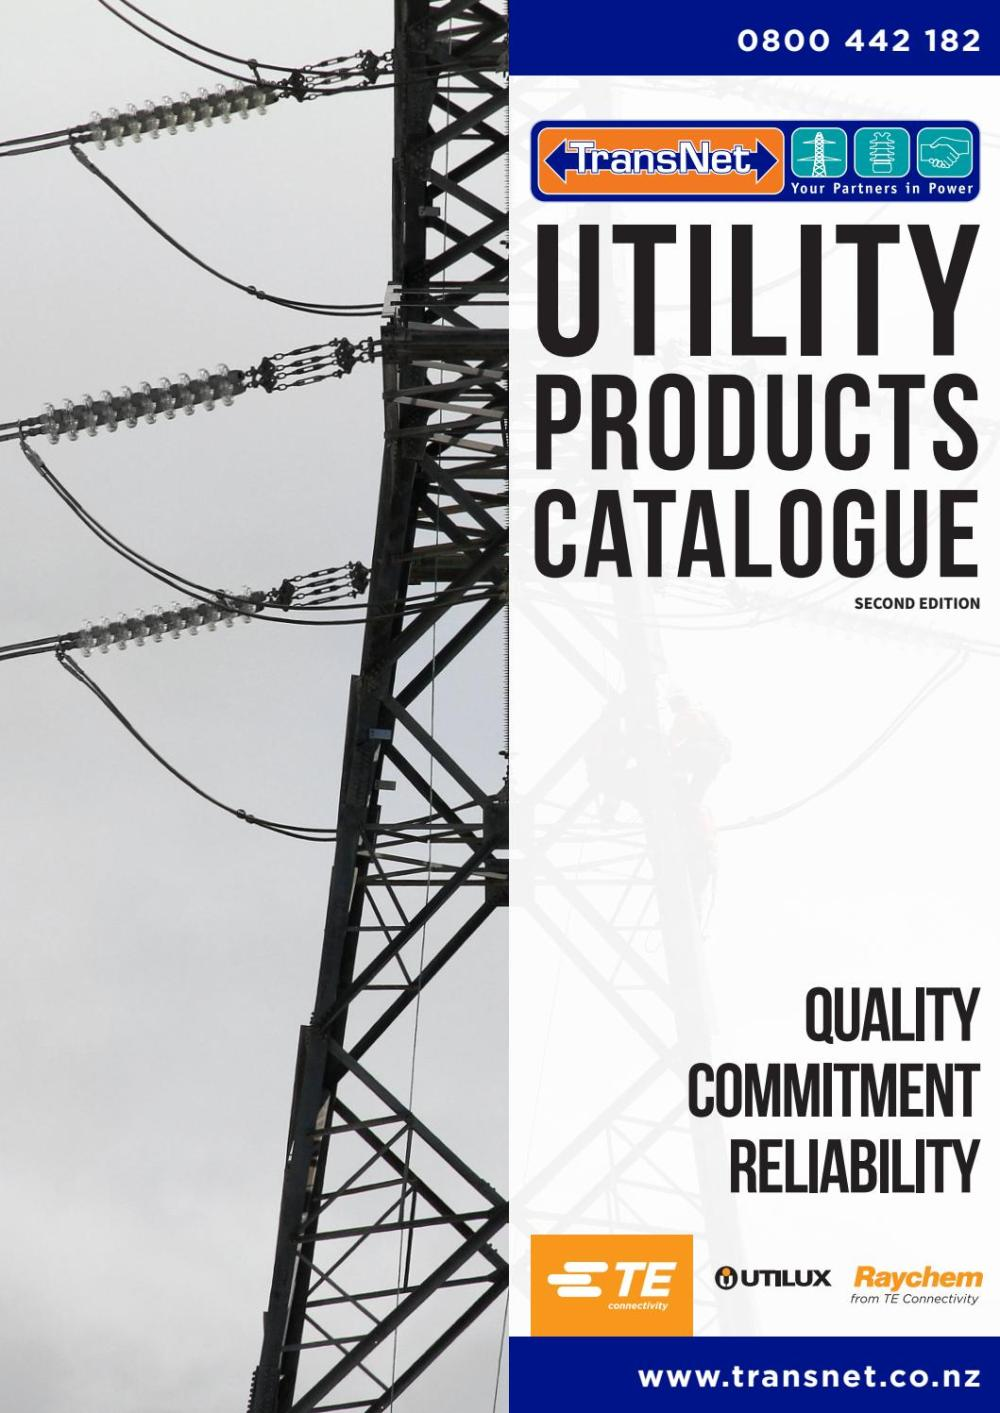 medium resolution of transnet nz ltd utility products catalogue 2018 second edition